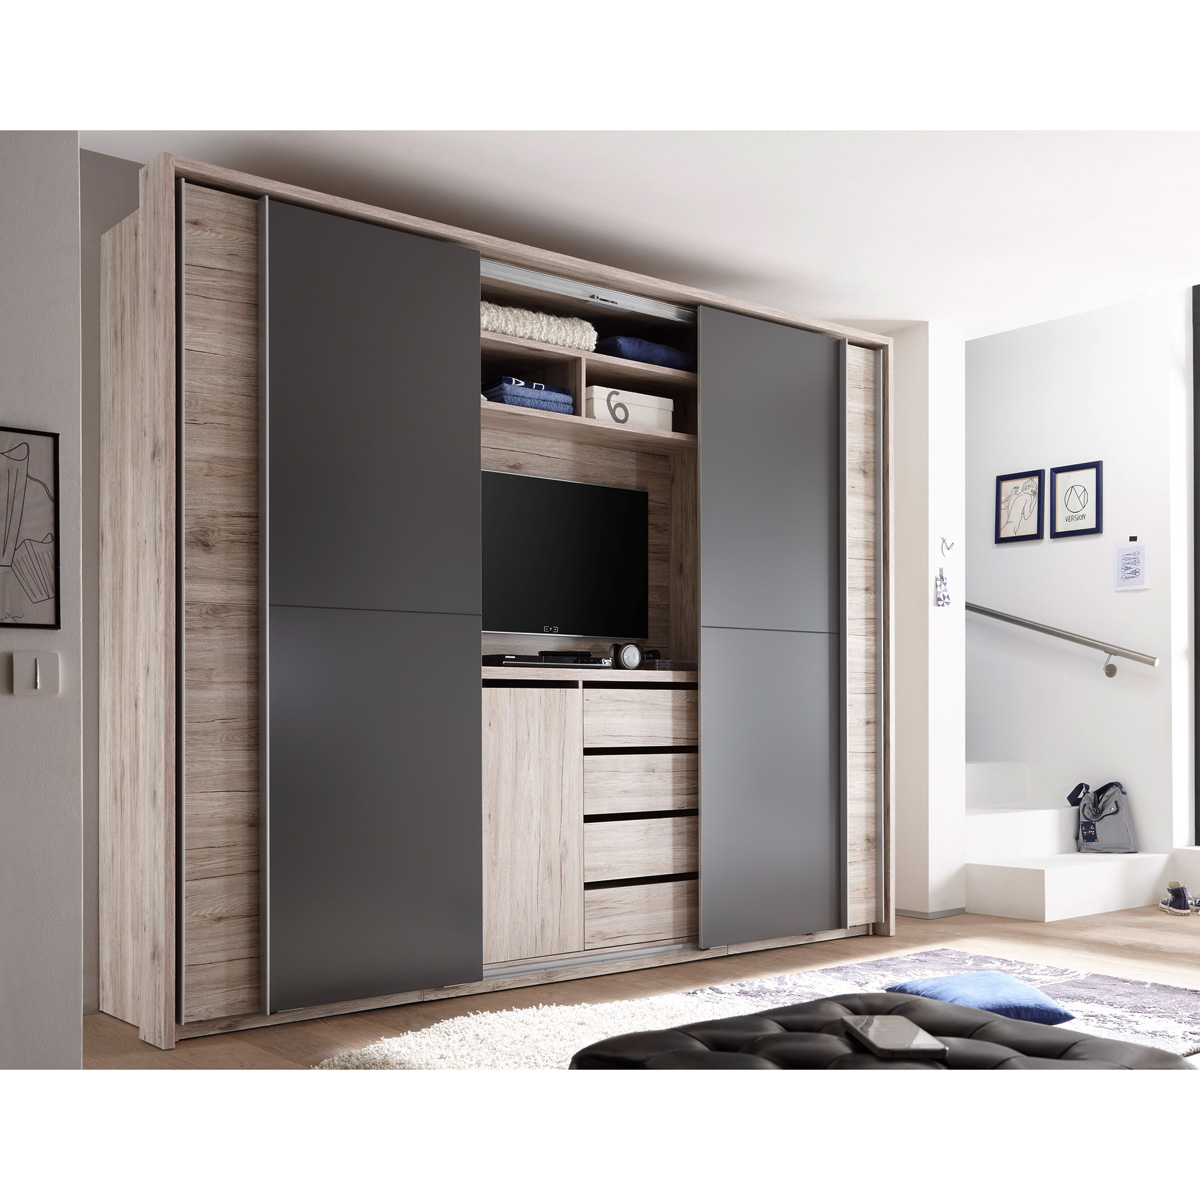 tv schrank f r drau en inspirierendes design f r wohnm bel. Black Bedroom Furniture Sets. Home Design Ideas